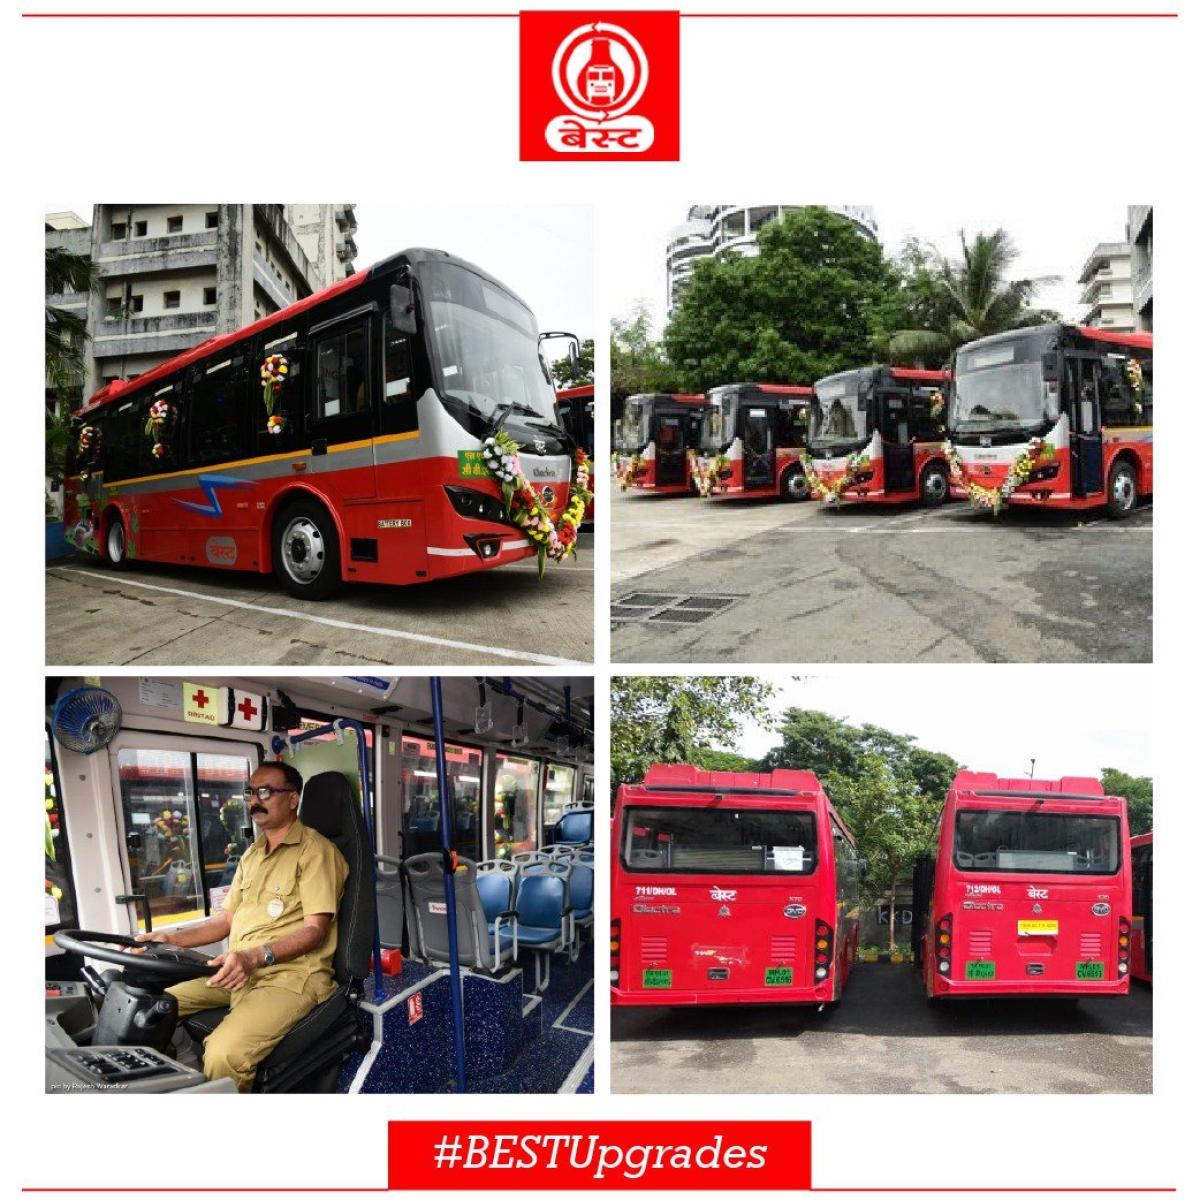 Mumbai's BEST gets 10 more Electric Buses for commuters